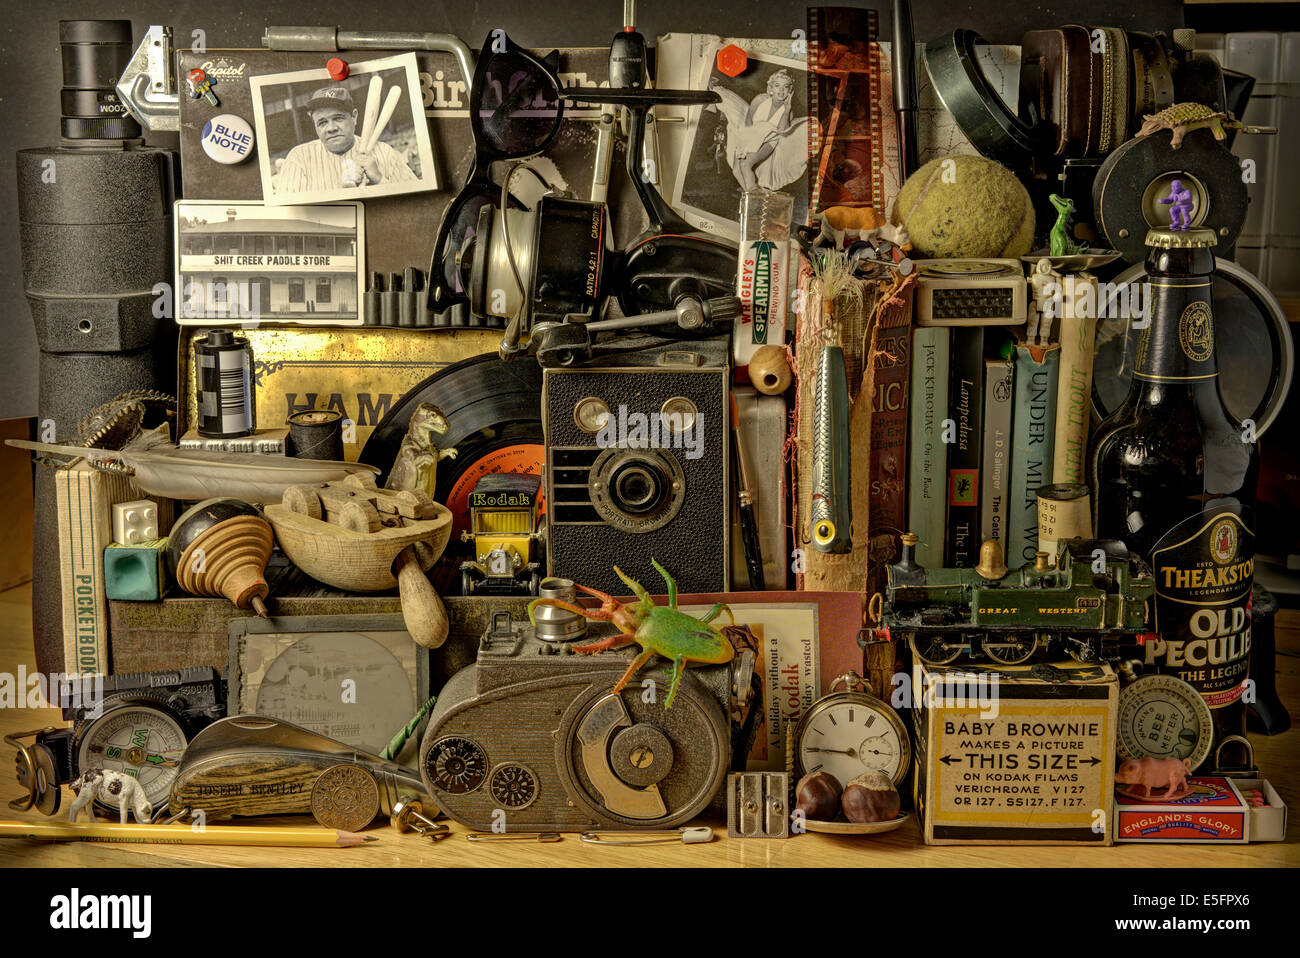 Boys Toys, Old toys and gadgets - Stock Image